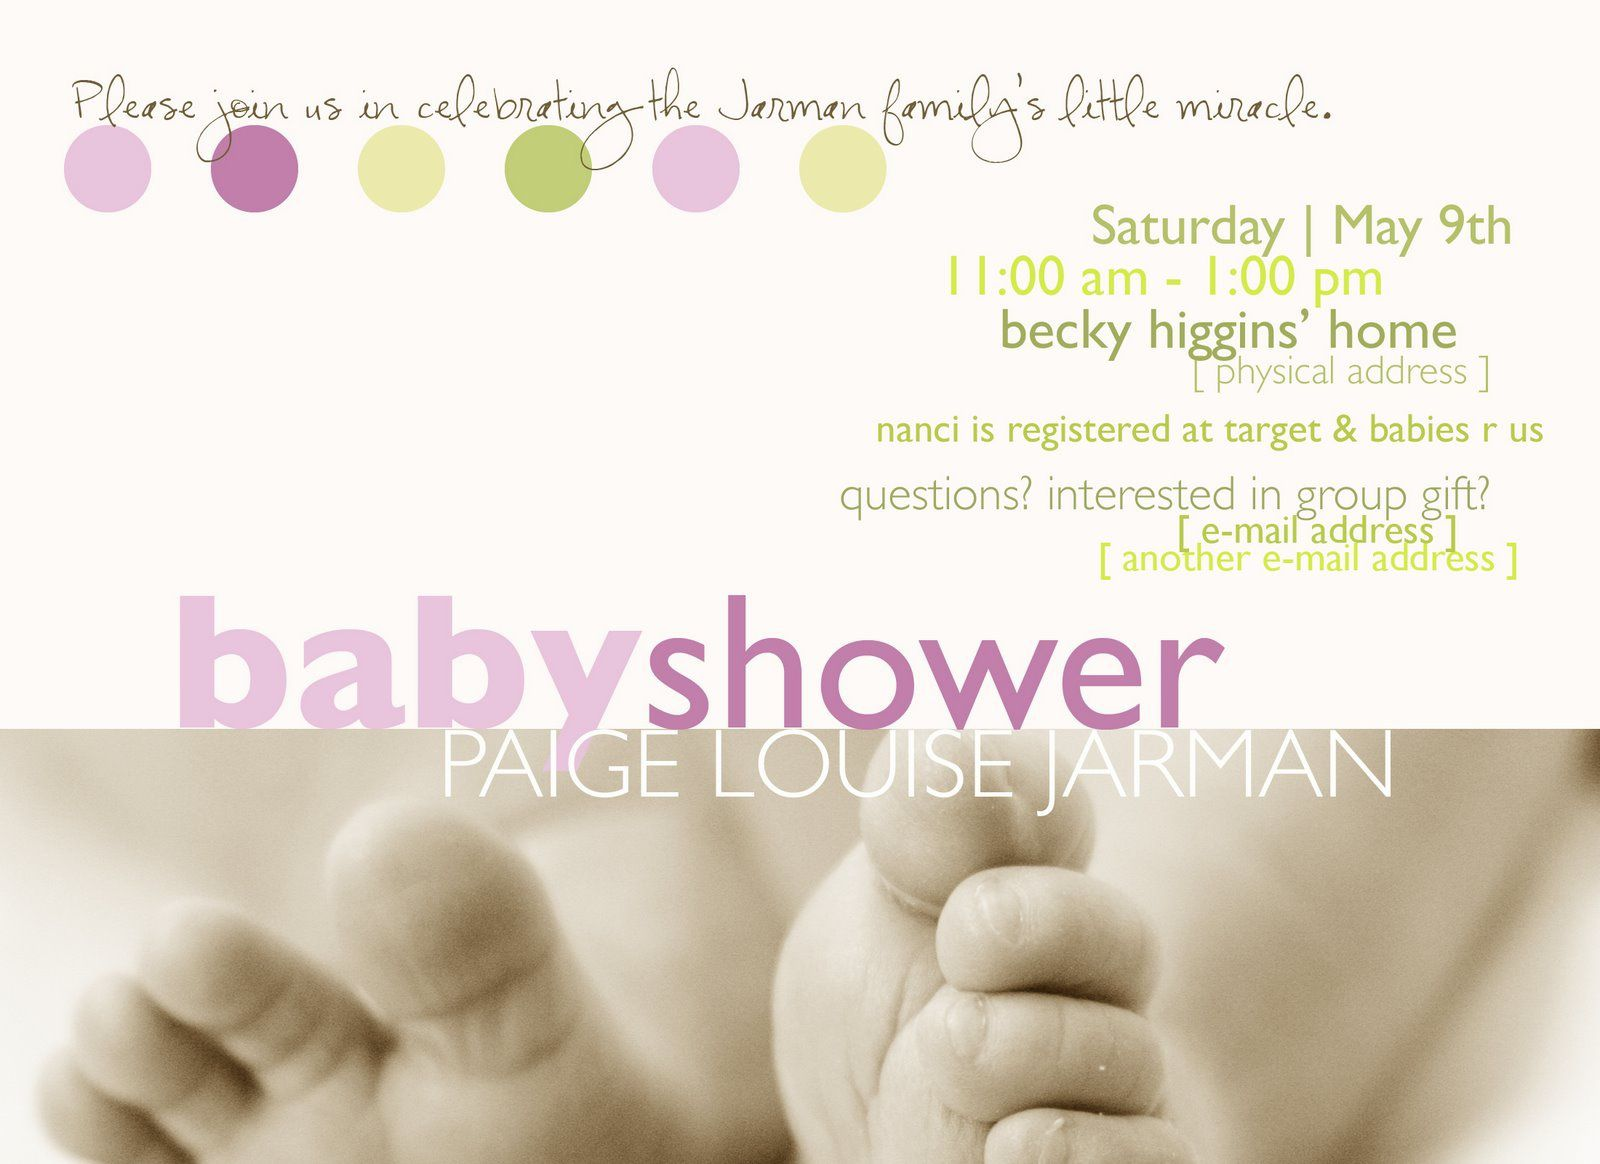 002 Archaicawful Microsoft Word Invitation Template Baby Shower Highest Quality  Free Editable InviteFull